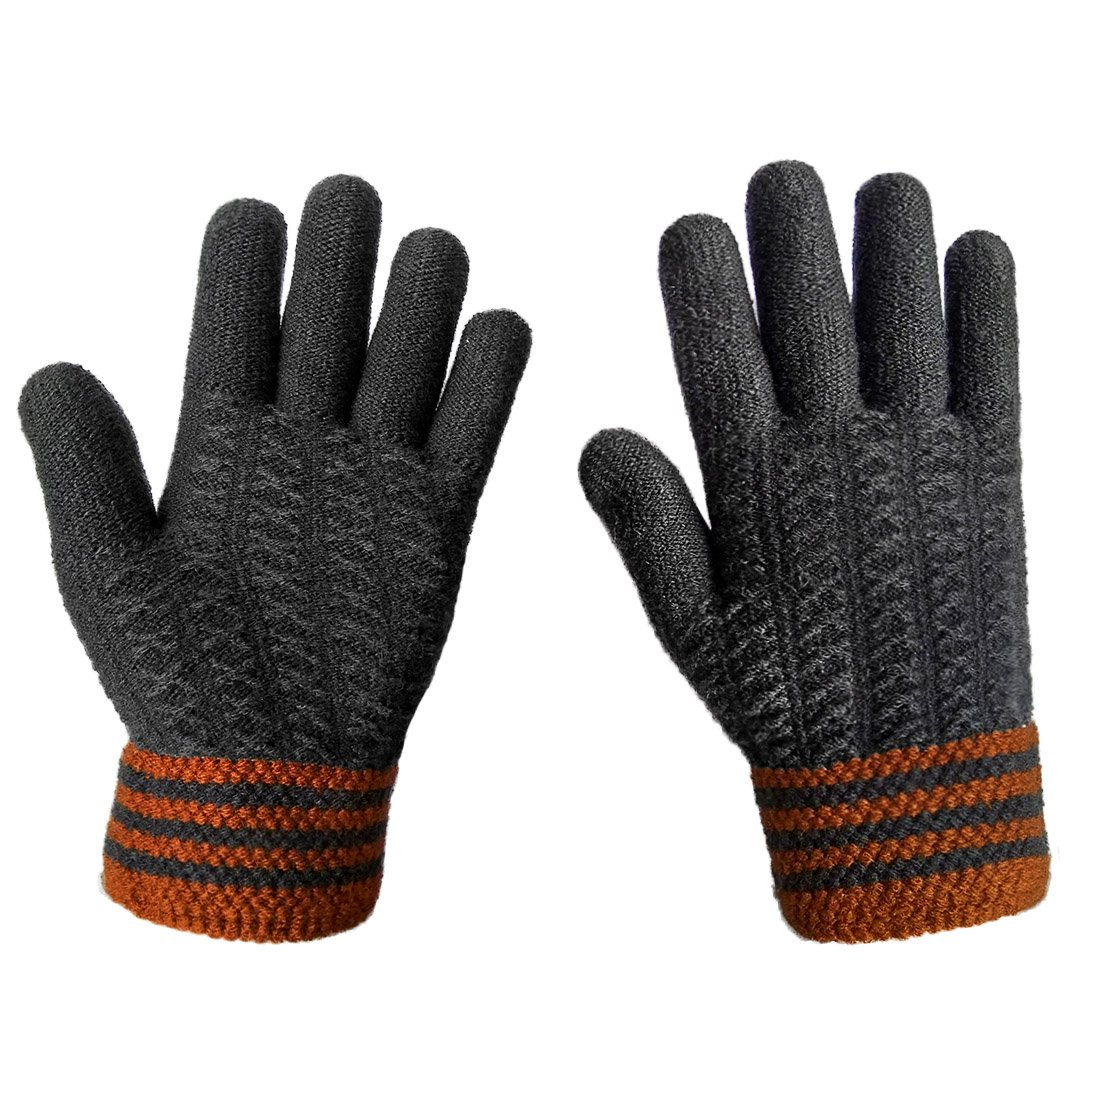 LETHMIK Mens Winter Thick Gloves Black Knit with Warm Wool Lining thick knit gloves navy blue